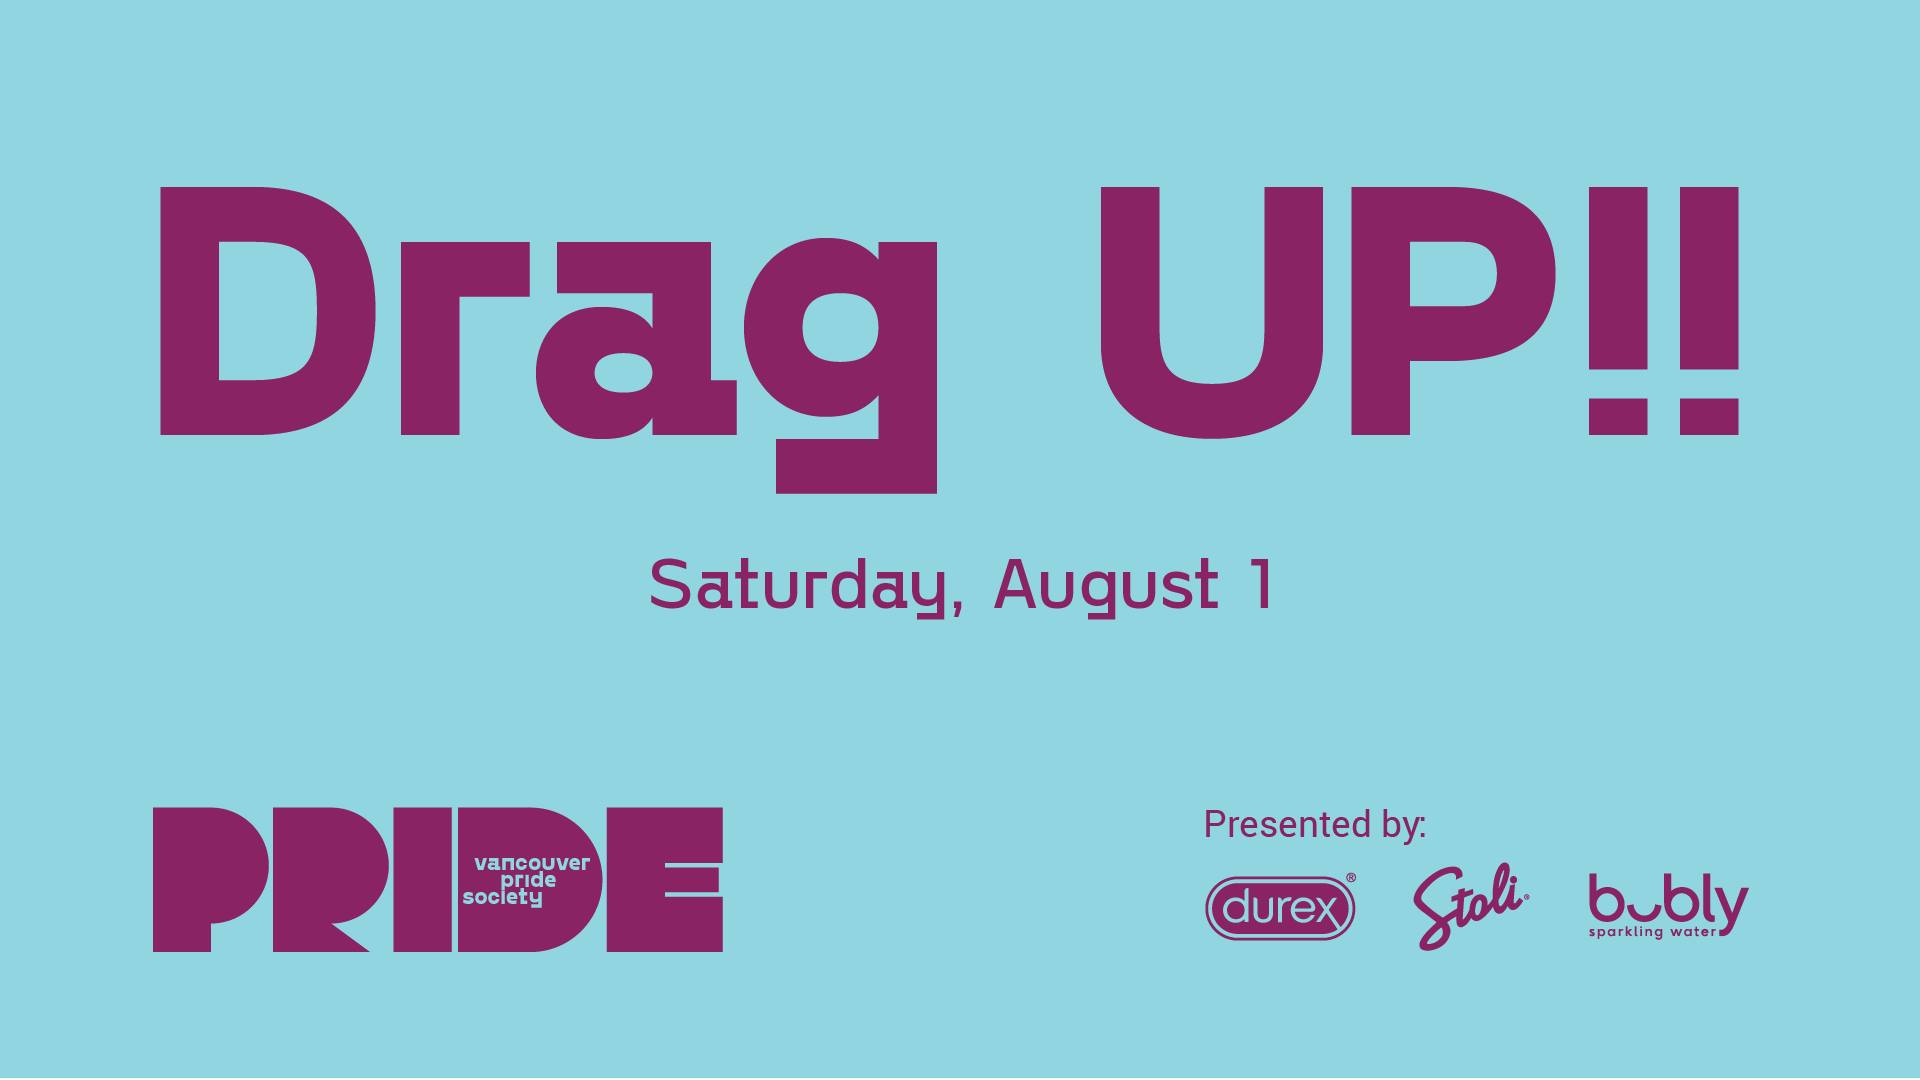 """A light blue background has the words """"Drag UP!!"""" in dark Purple. Underneath in smaller letters is """"Saturday, August 1."""" Pride's new logo which includes the word PRIDE in a bold, stylized font with the words PRIDE SOCIETY inside the letter D is on the bottom left. Text reading """"Presented by"""" is followed by the logos of Durex, Stoli and Bubbly"""